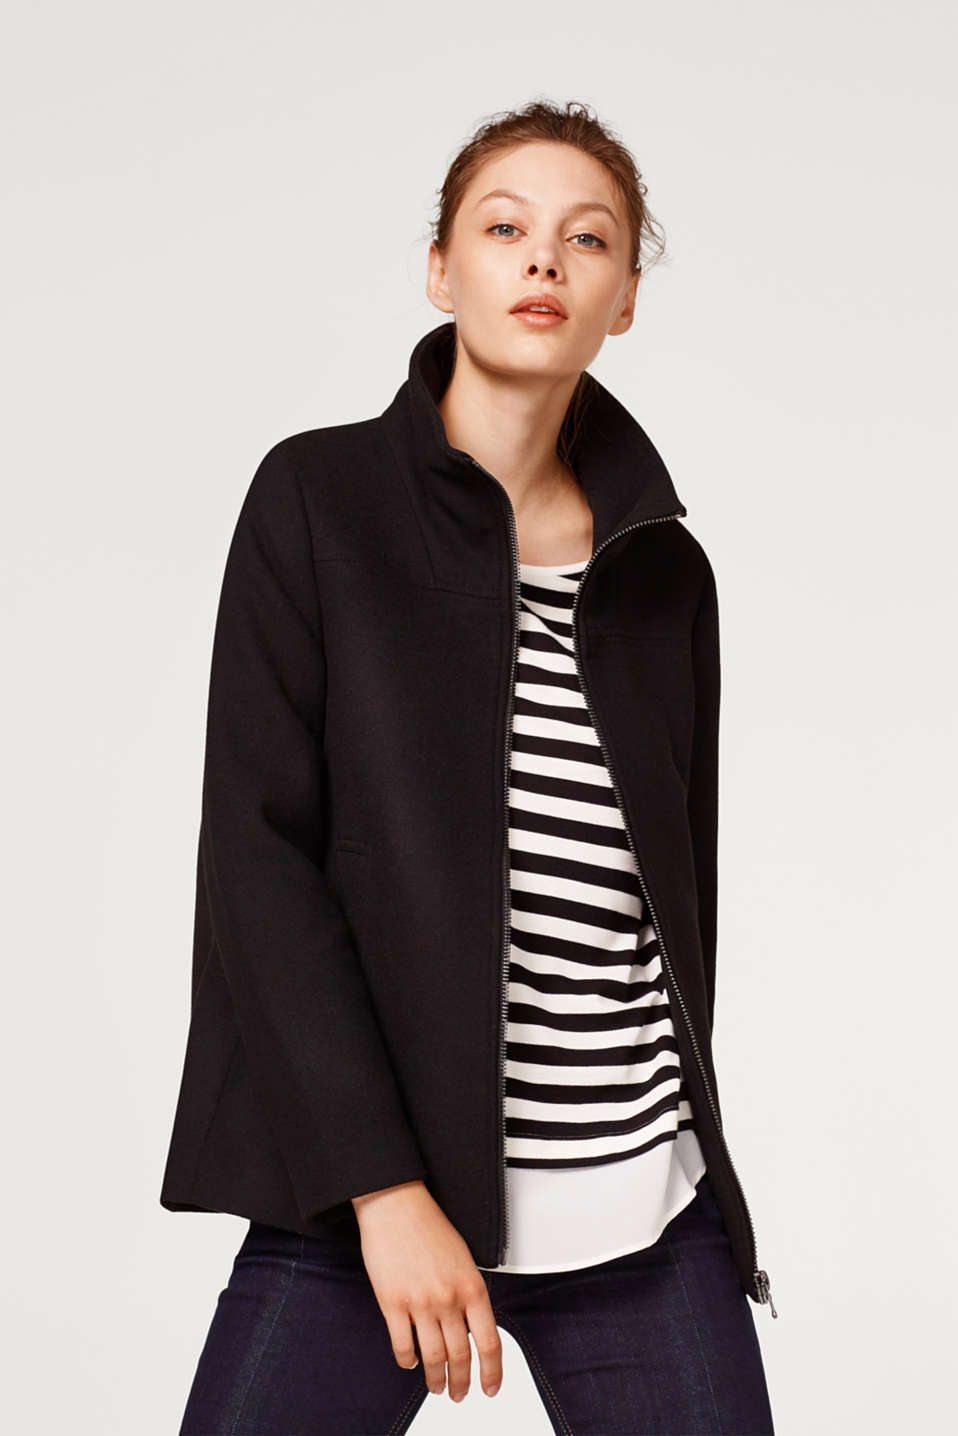 Esprit - Made of blended wool: A-line zip jacket